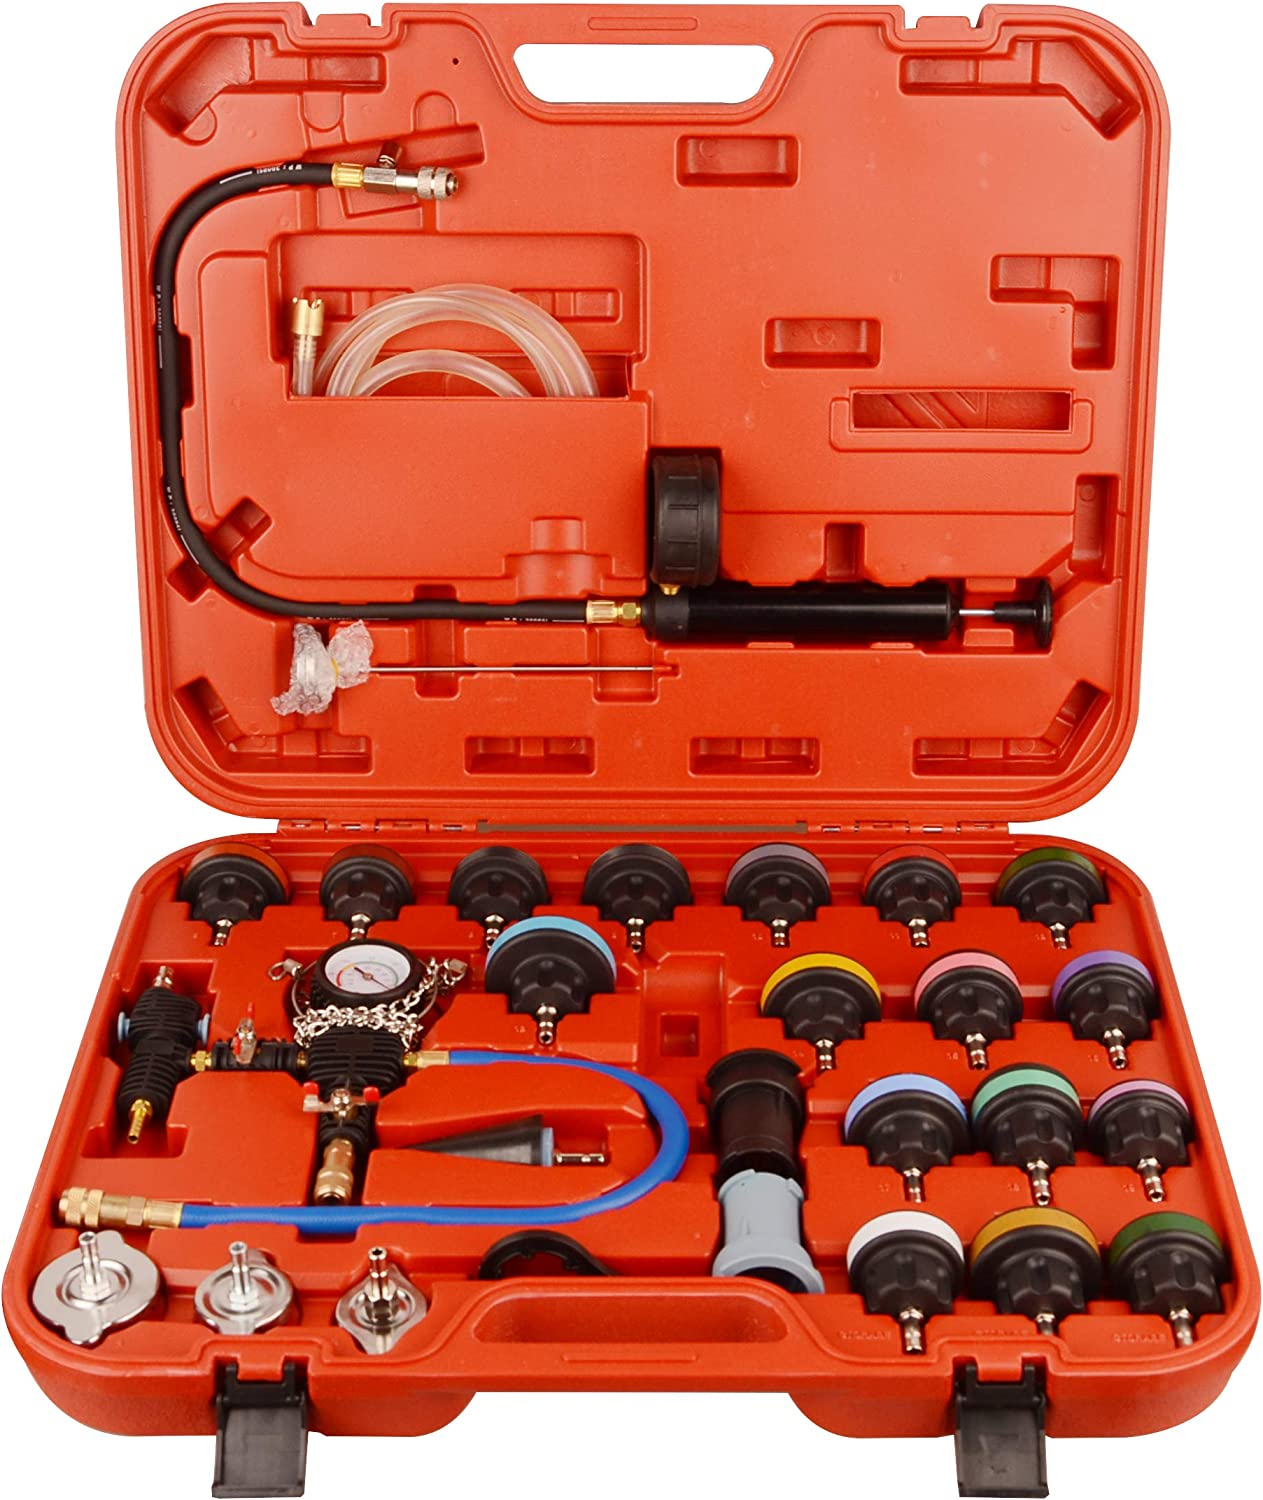 DA YUAN 28pcs Universal Radiator Pressure Tester and Vacuum Type Cooling System Kit